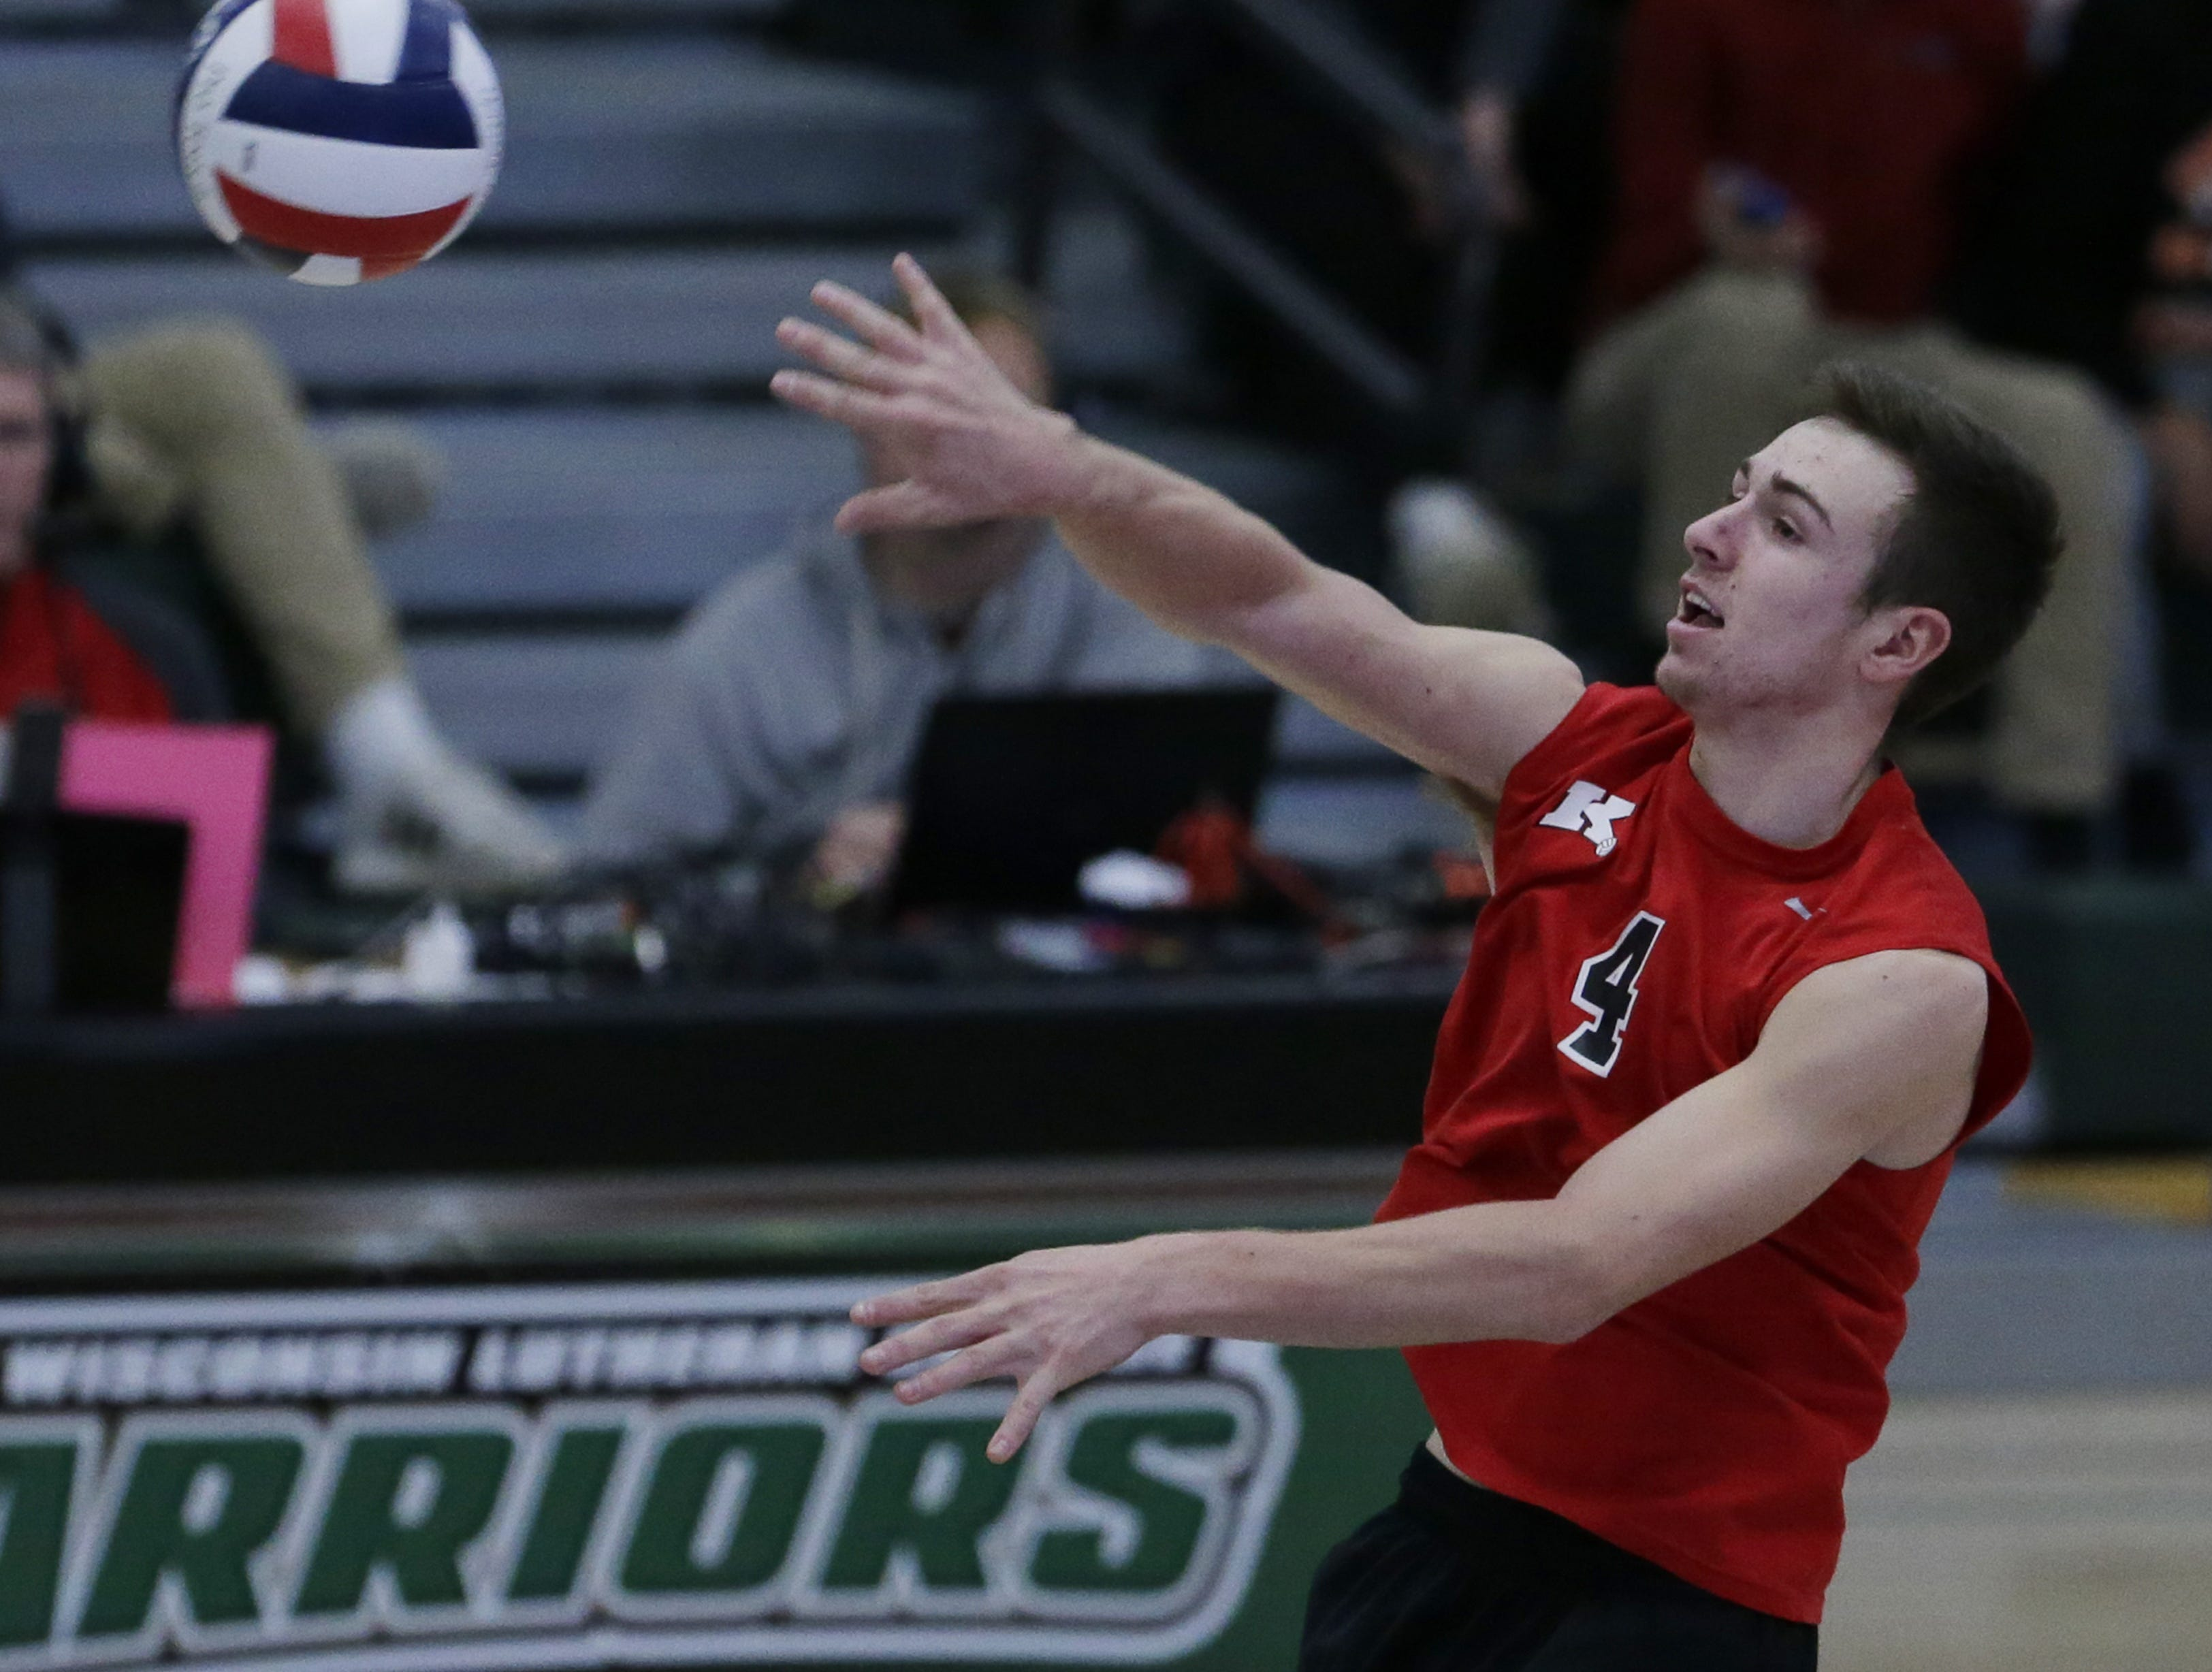 Kimberly's Trey Anderson hits the ball during the game.  Kimberly Papermakers played Kenosha Indian Trail Hawks in Division 1 WIAA boys volleyball playoff semi-final, Saturday, November 10, 2018 at Wisconsin Lutheran College in Milwaukee, Wis. Joe Sienkiewicz/USA Today NETWORK-Wisconsin